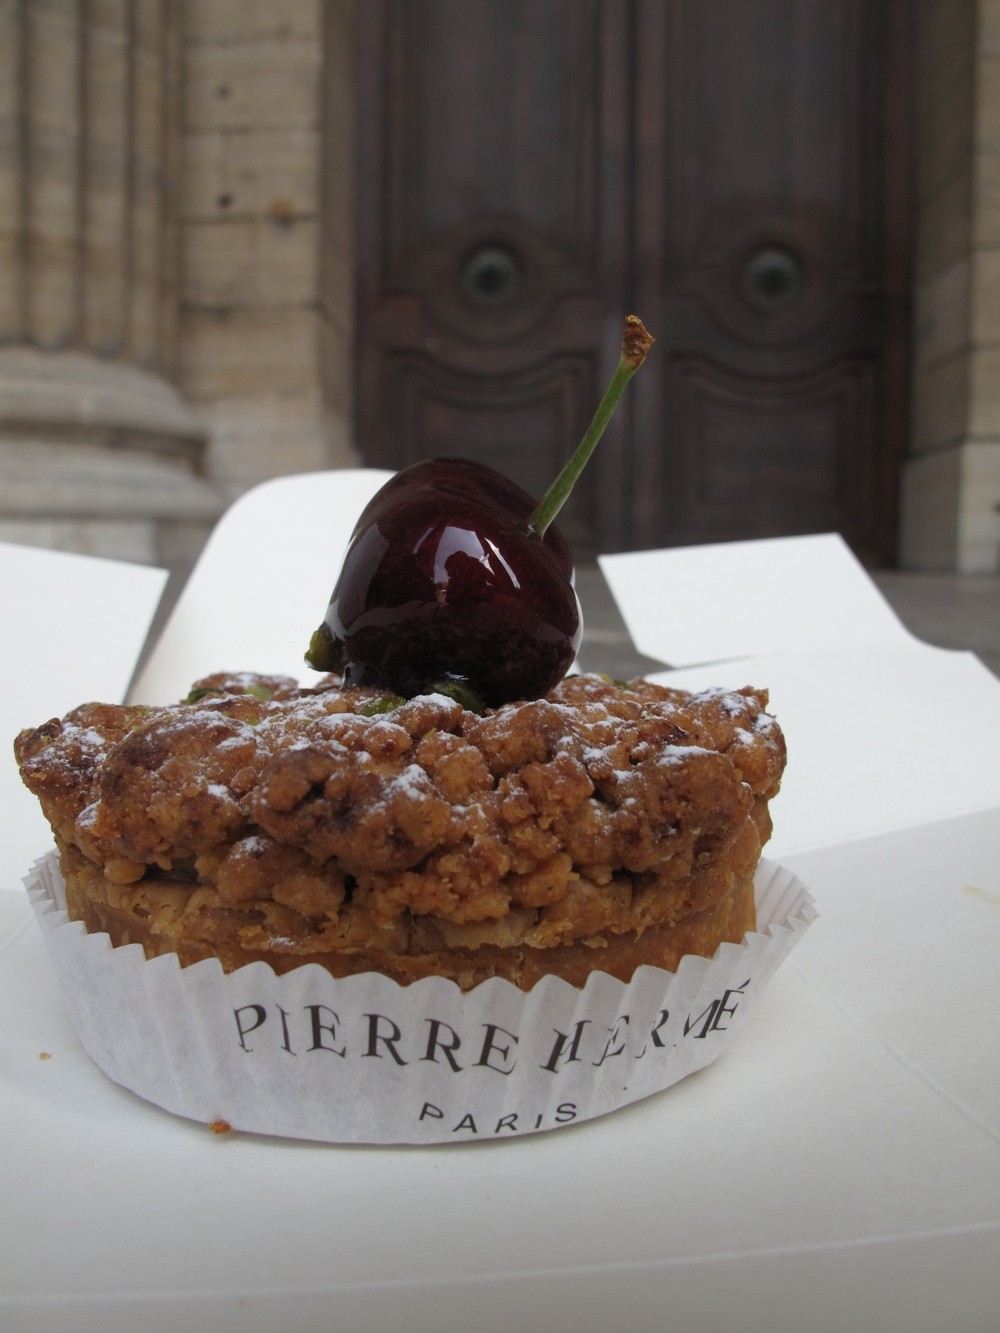 Pierre Herme pastry with cherry on top, on the steps of St Sulpice